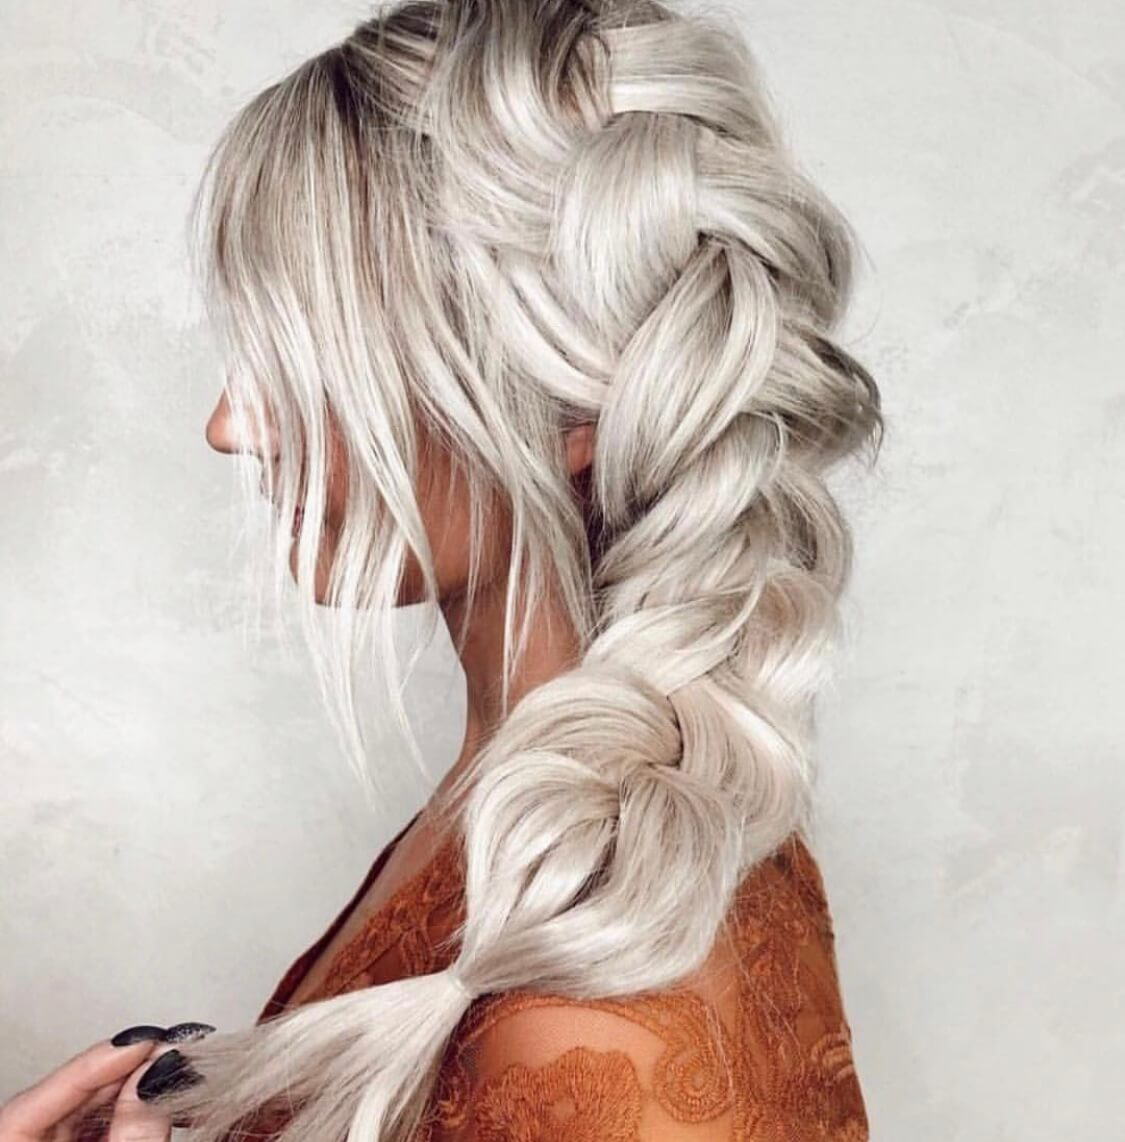 blonde hairstyle braid white grilling hair ideas Inso